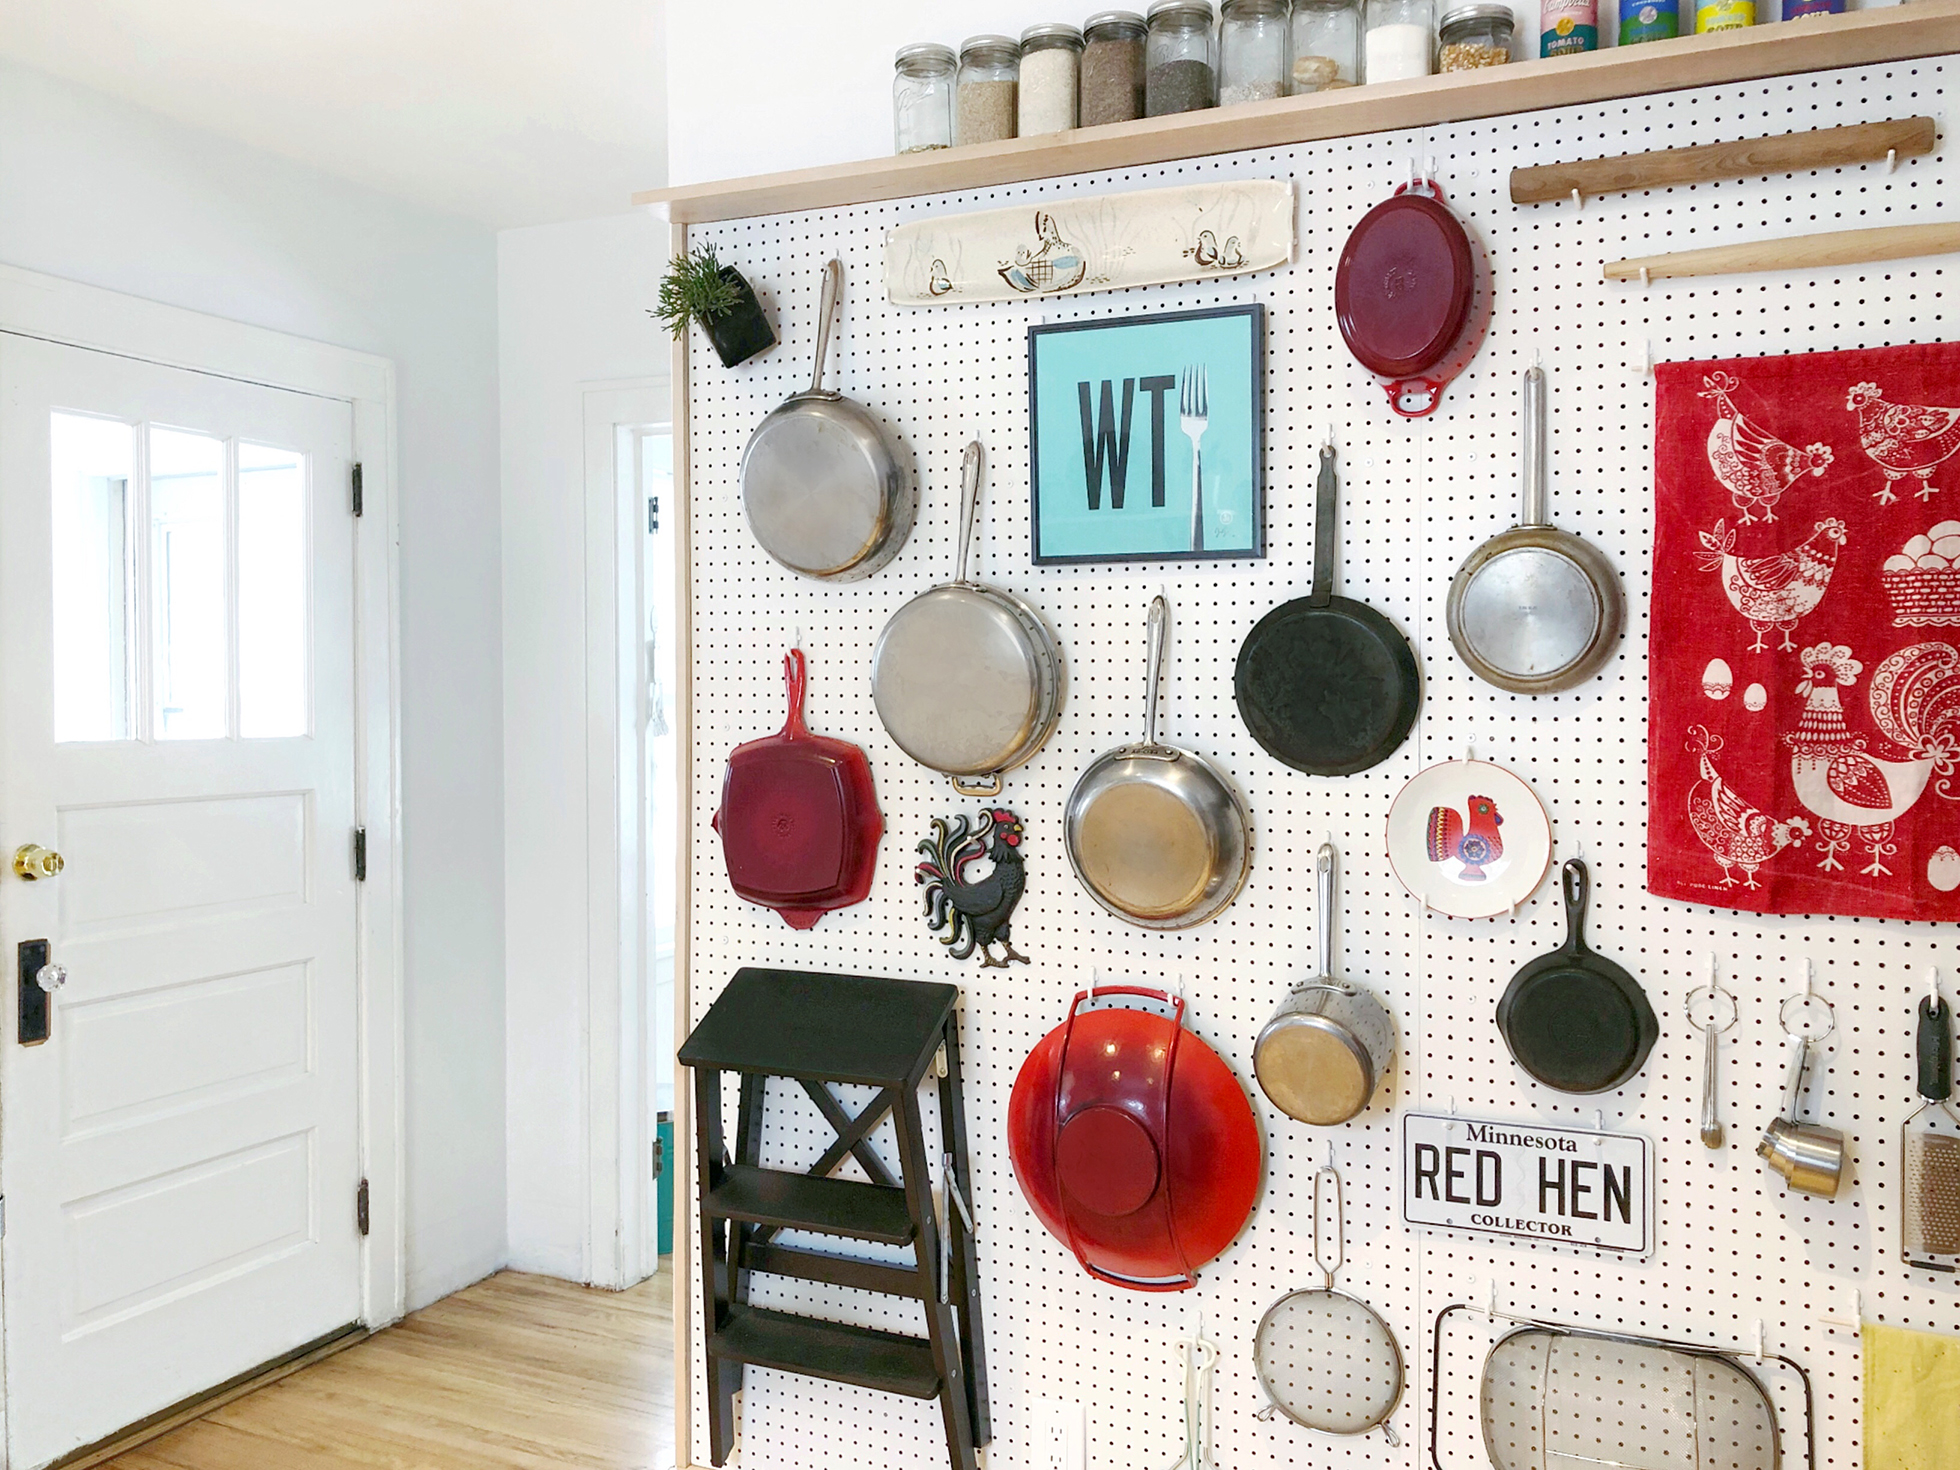 Pegboard in kitchen hanging pots, pans, and other items